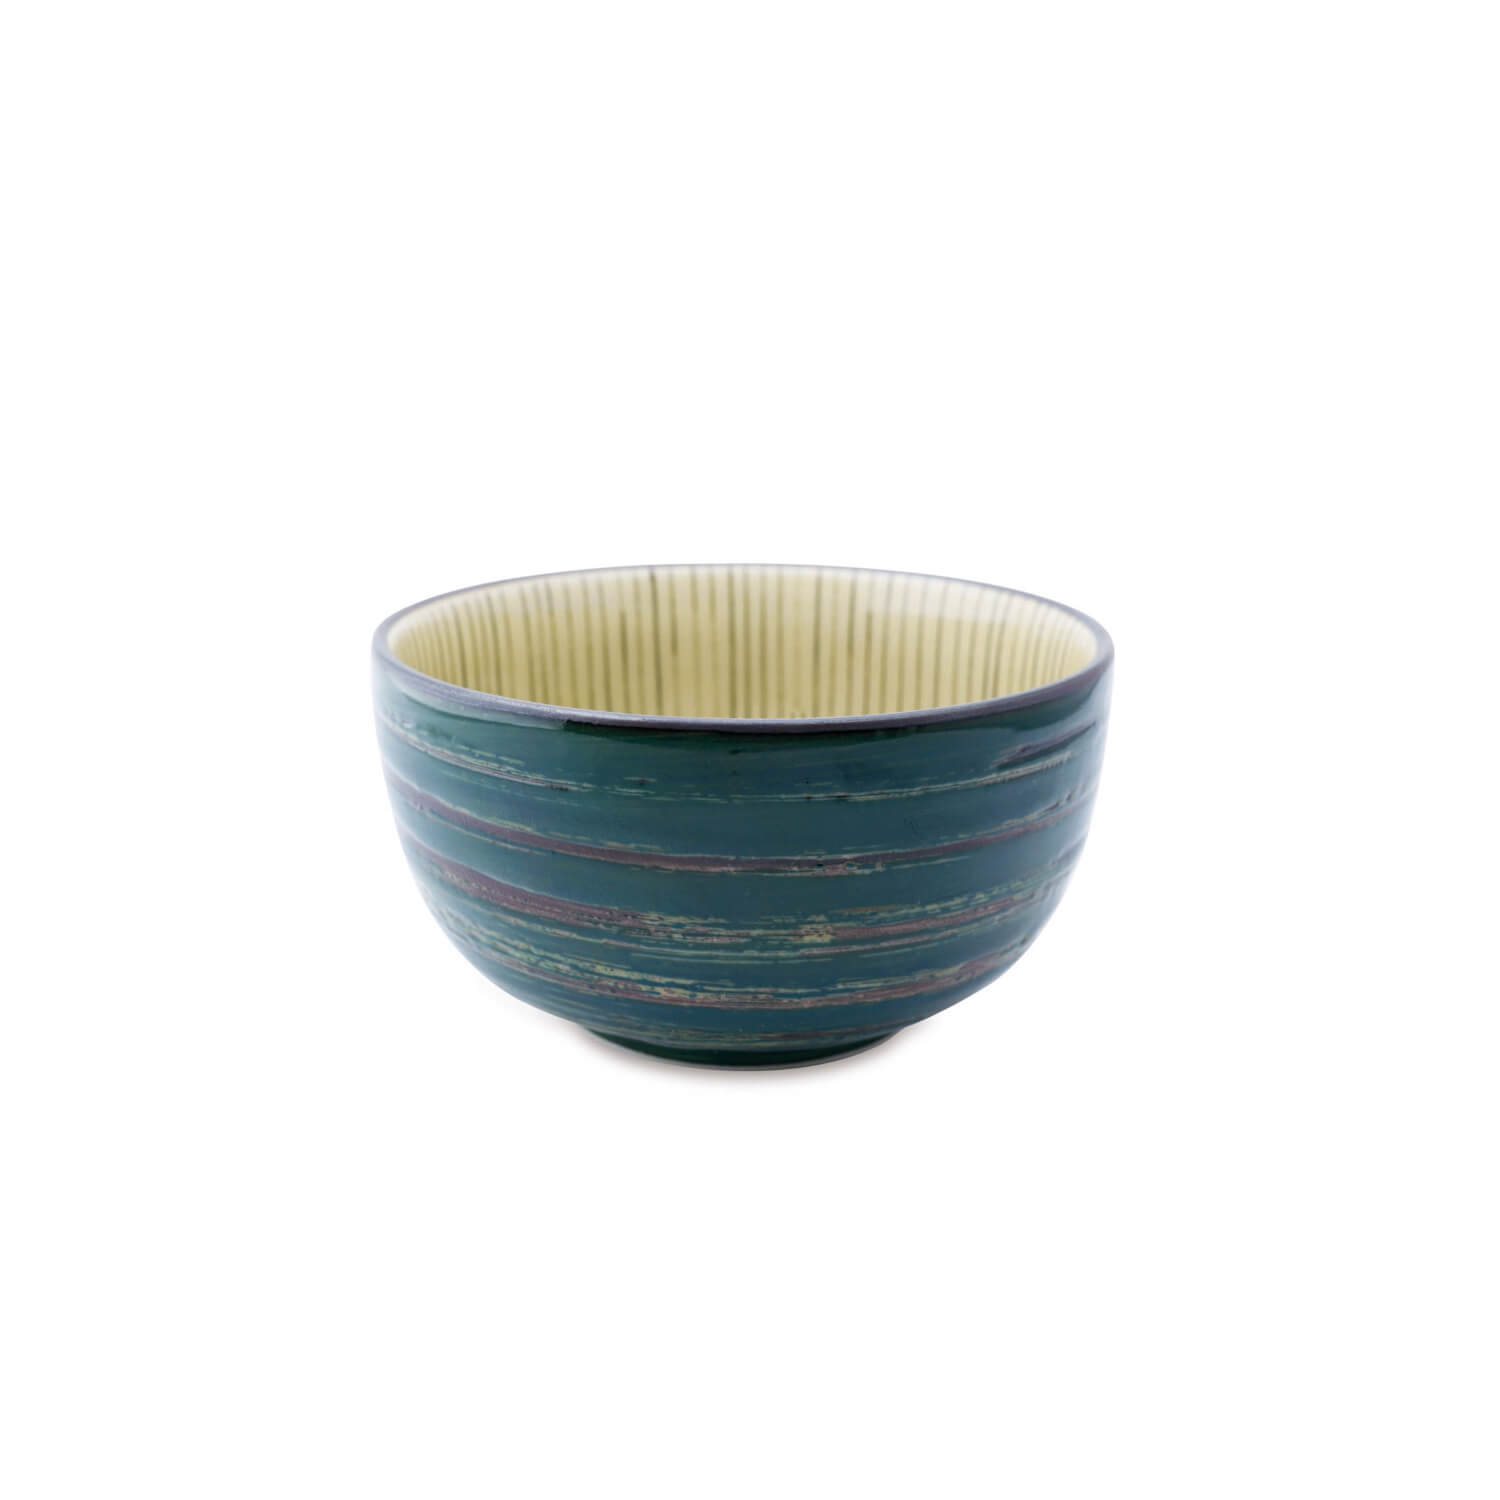 Original Japan matcha bowl Kosai